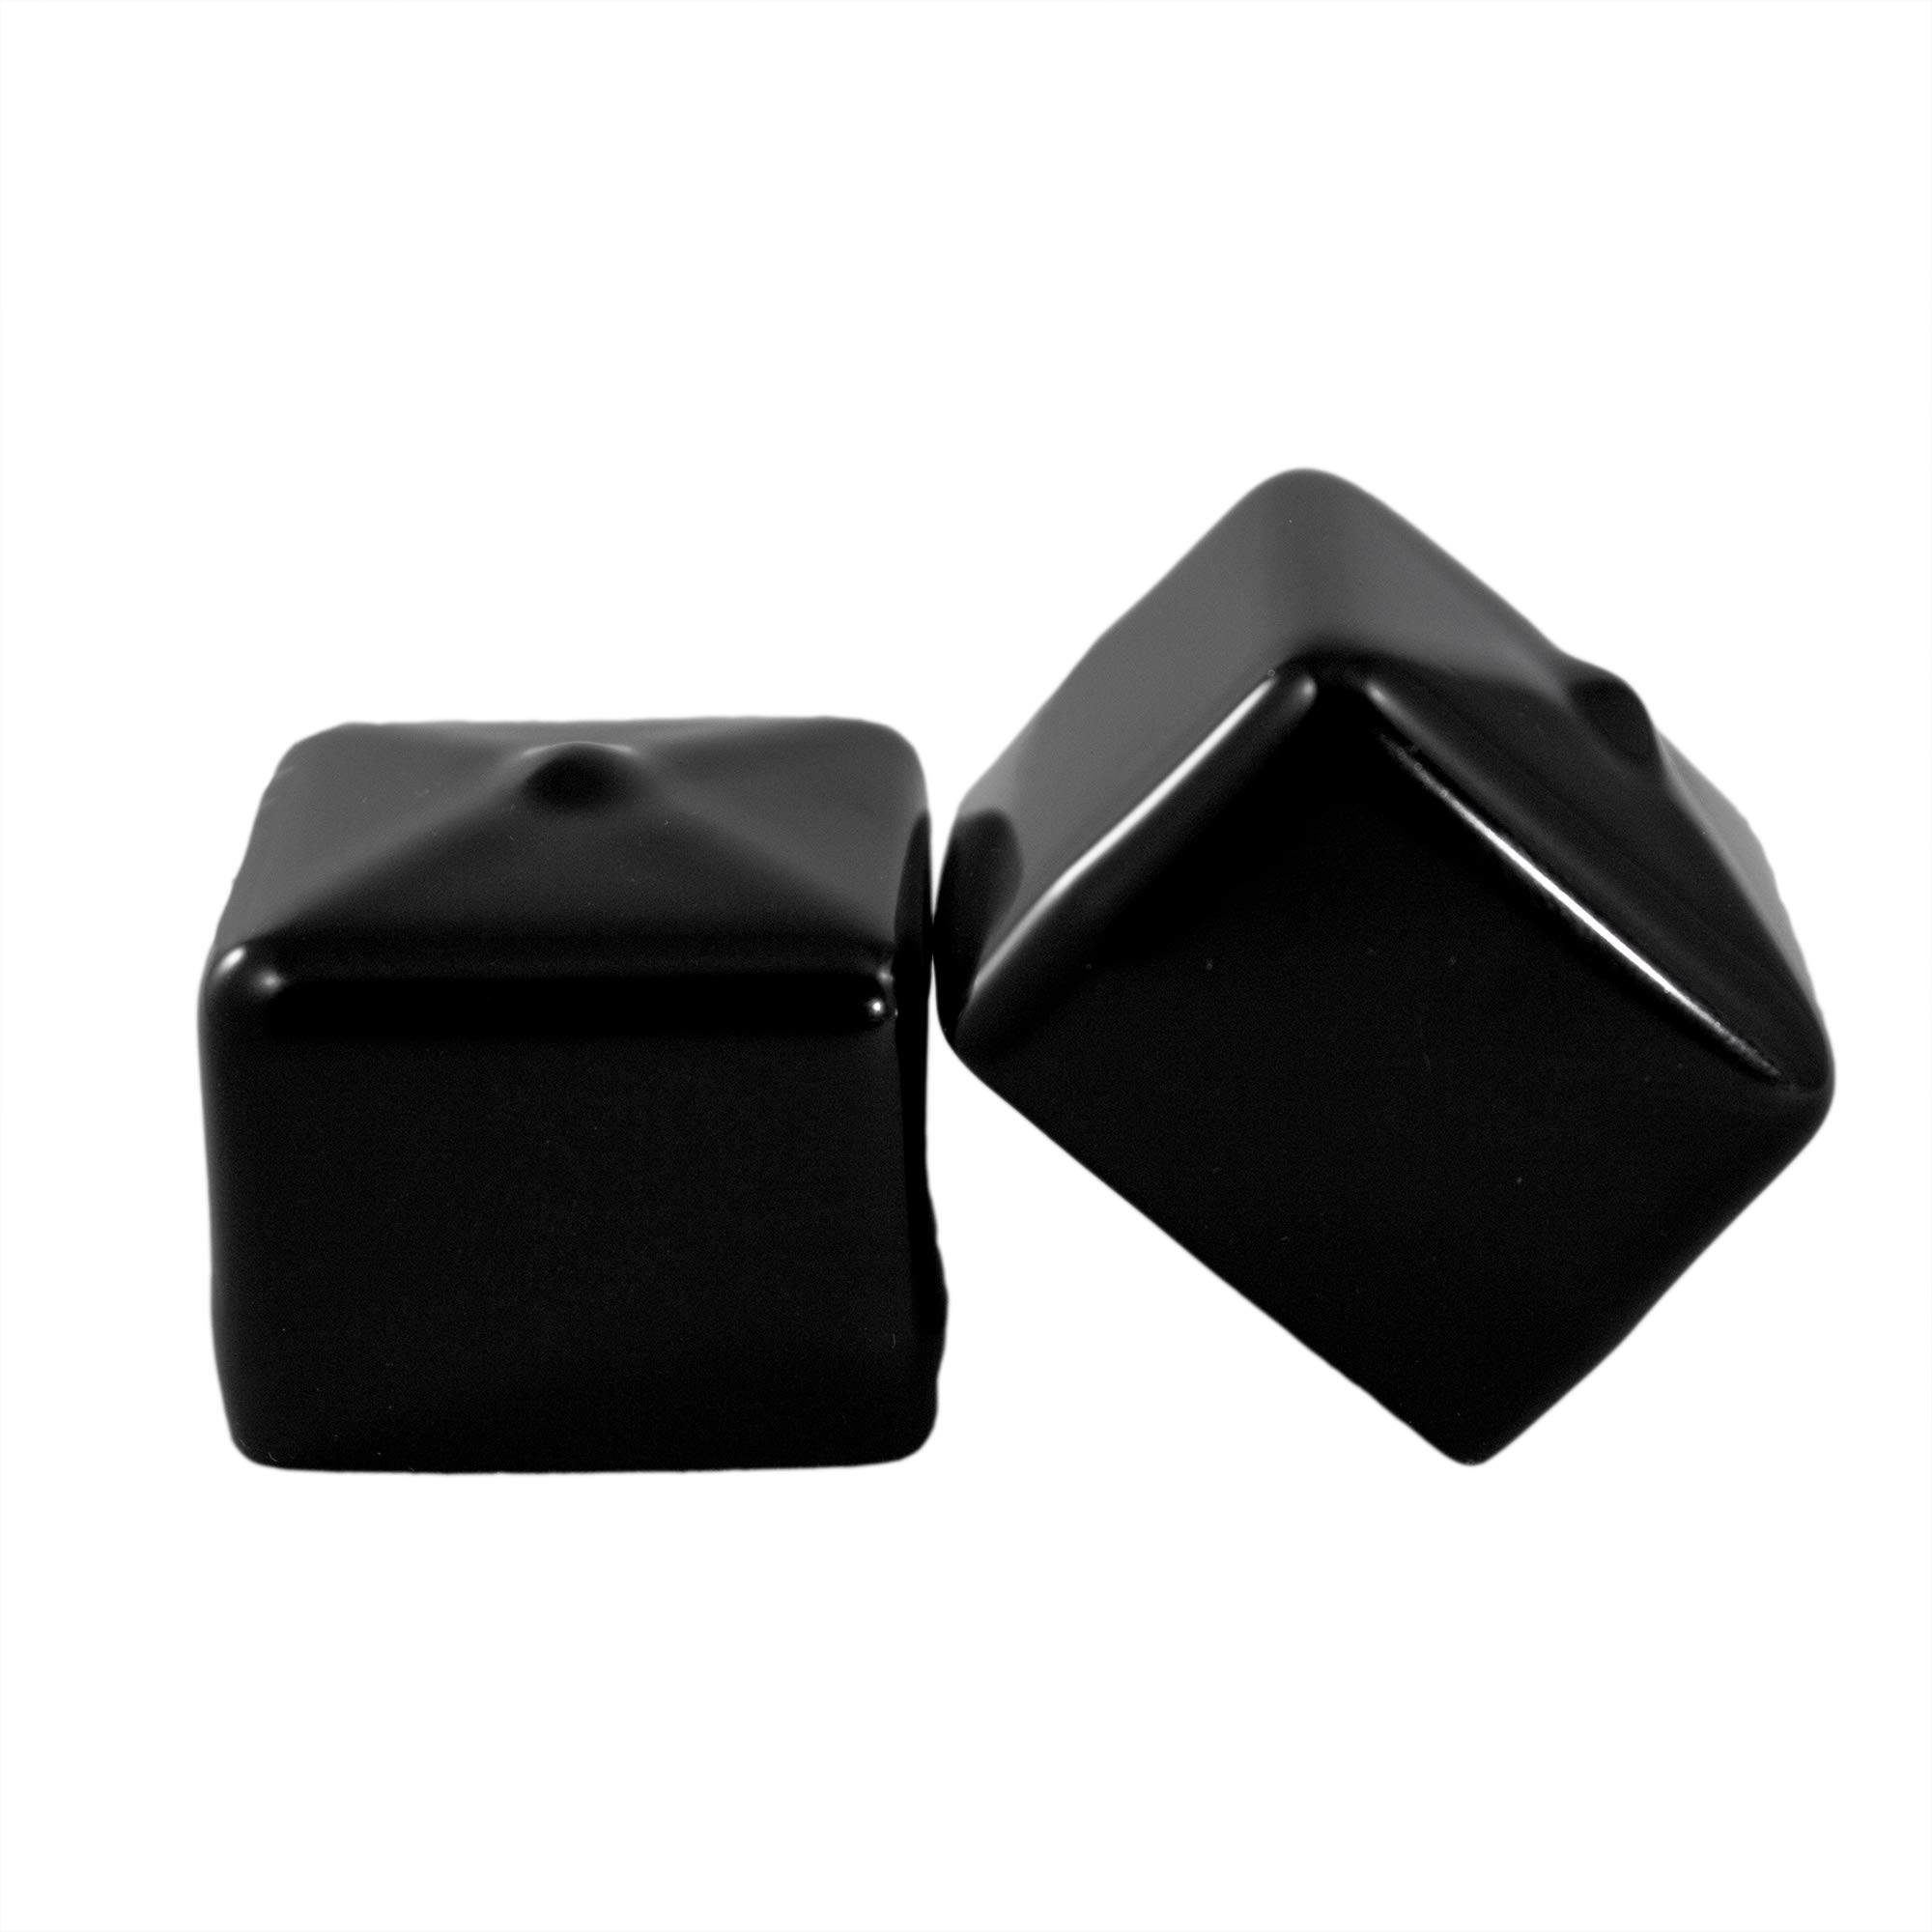 8 Pack - Vinyl Square Pipe End Cap Cover Black Rubber Plastic Tube Caps Tubing Post Marine Safety Stretchable PVC (1.25'' (1 1/4''))